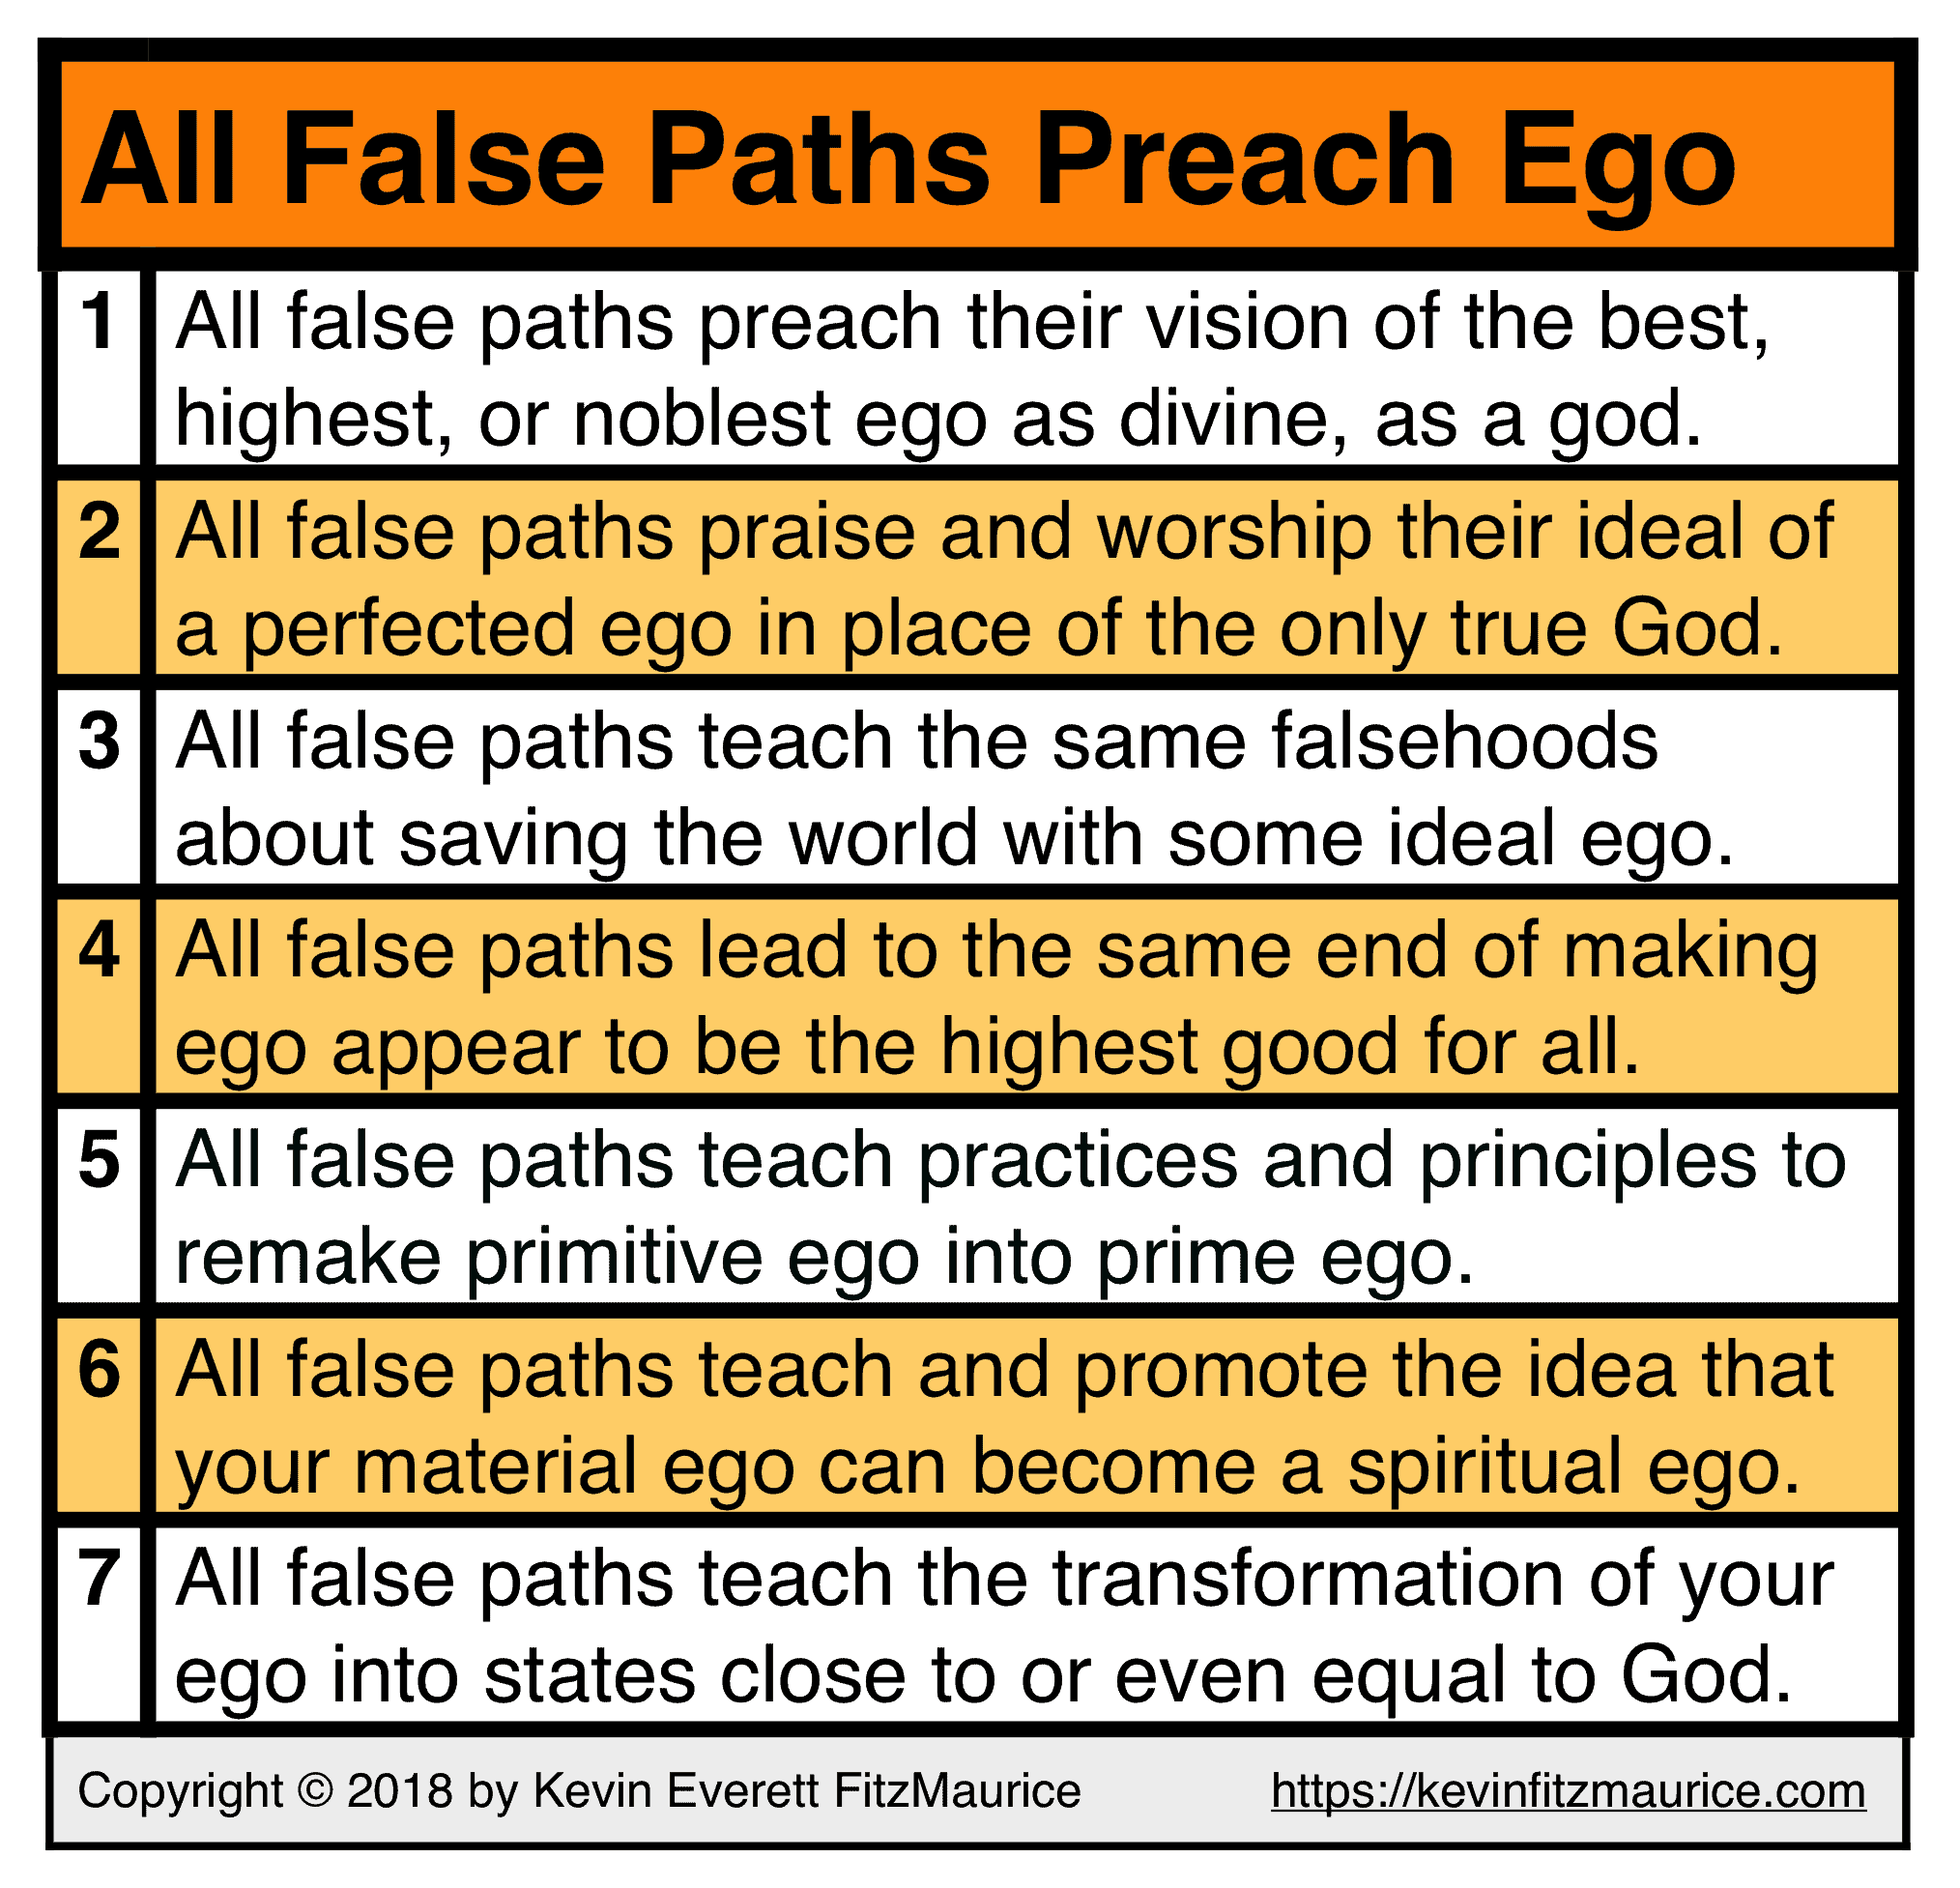 All False Paths Preach Ego, Not God